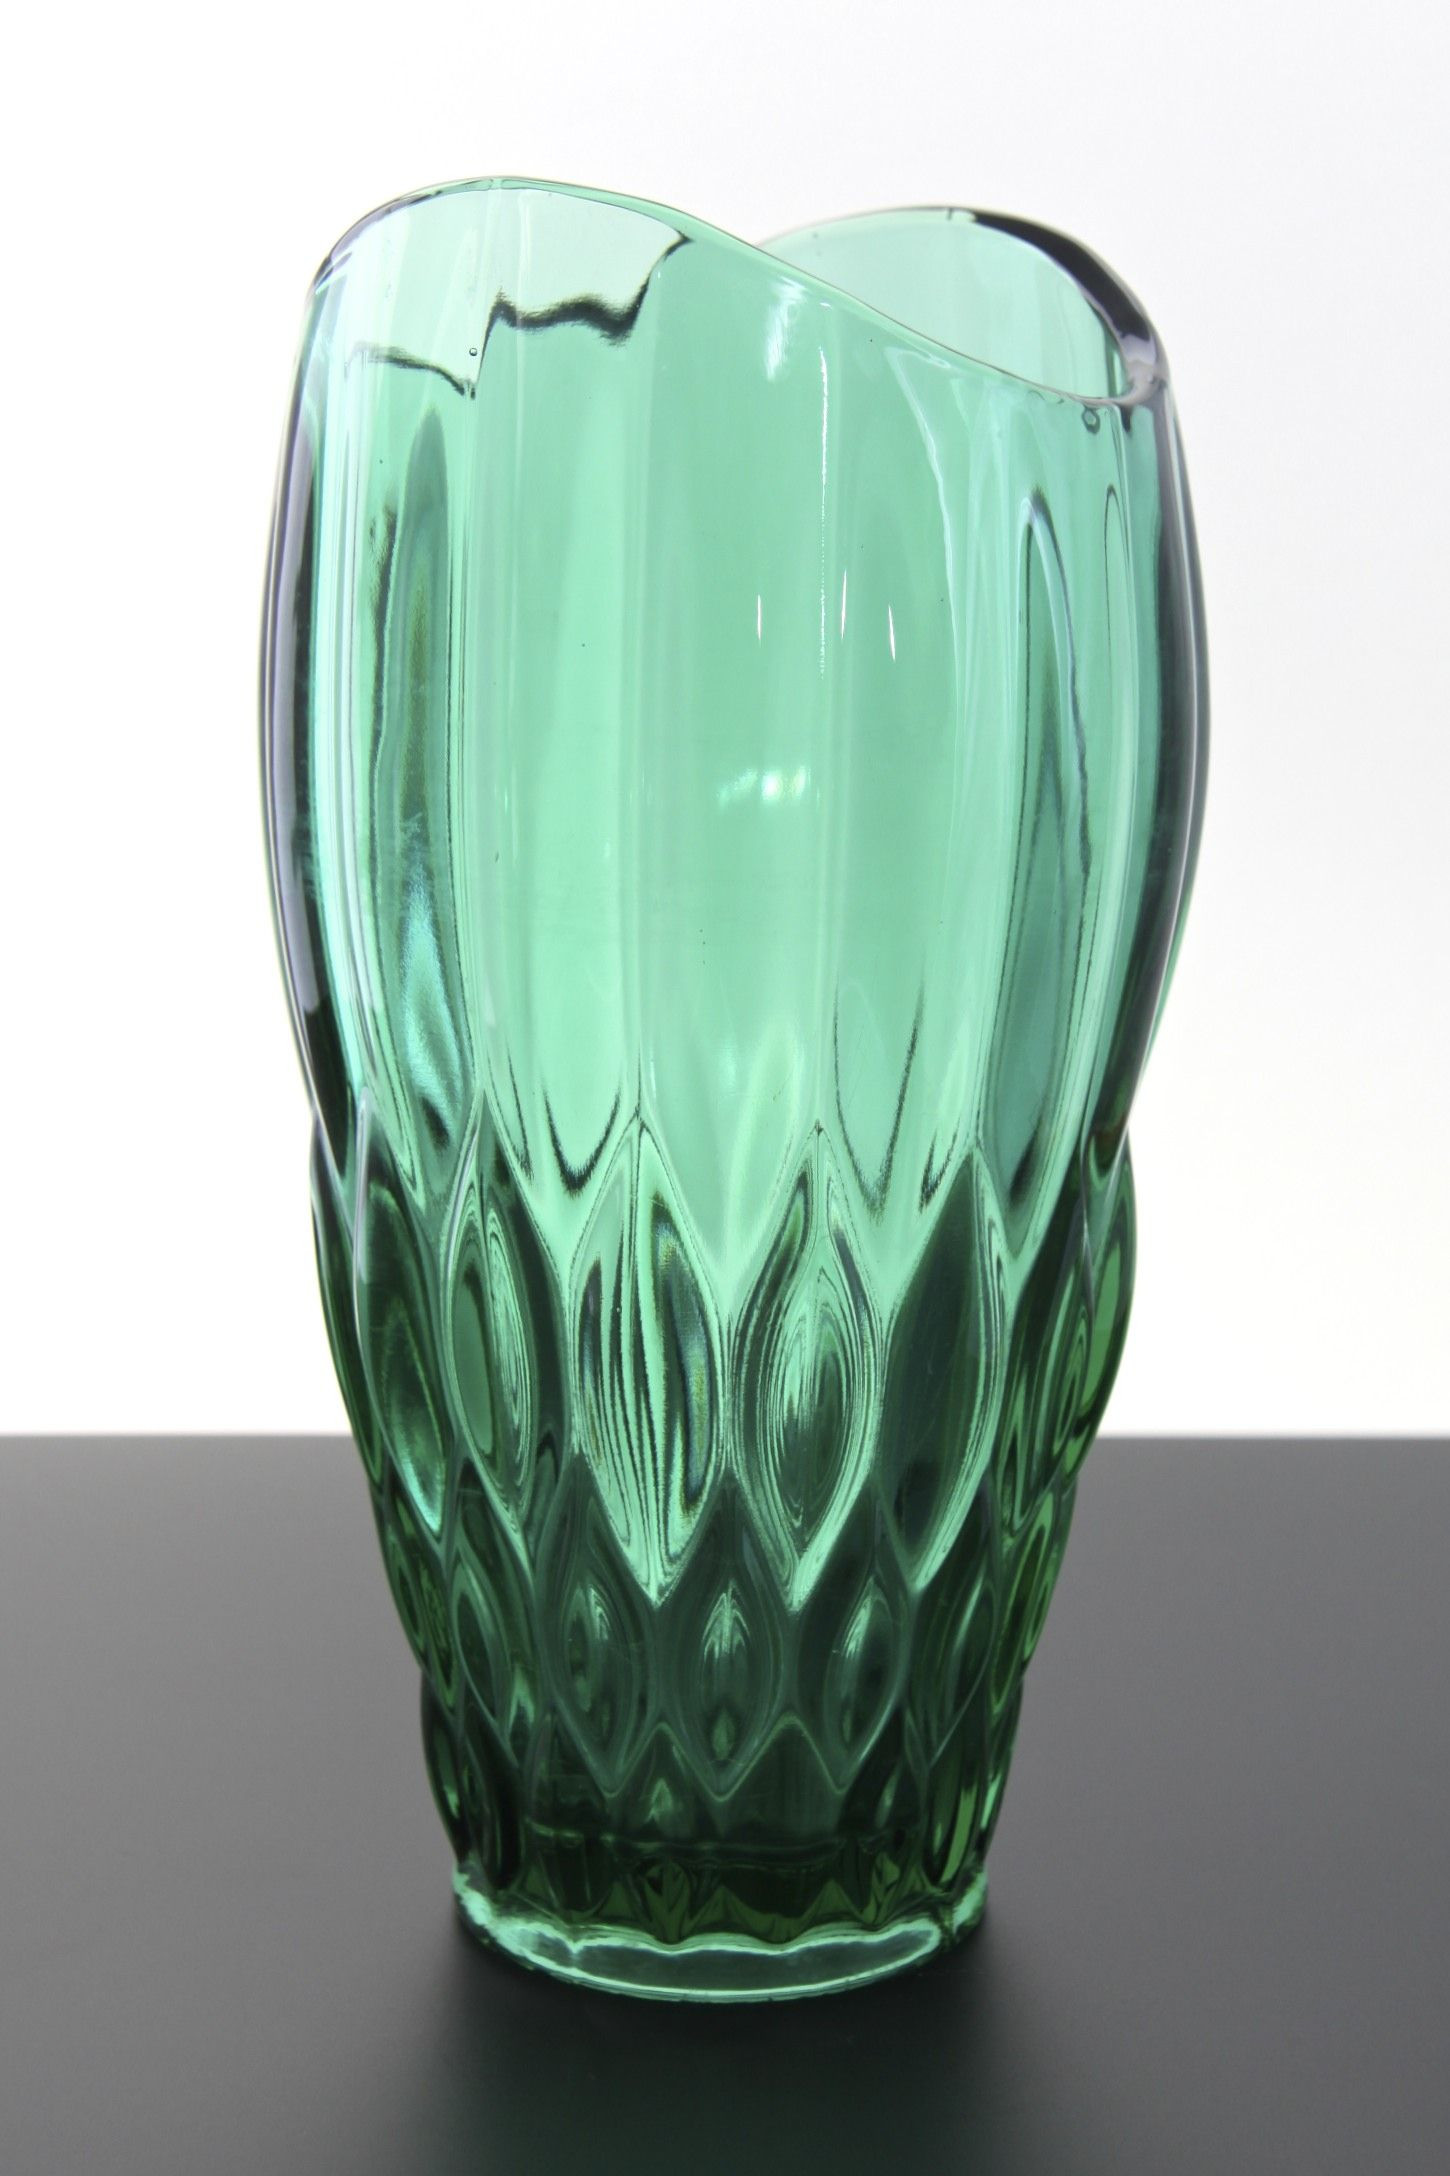 Czech Glass Vase Of Rudolfova1 1450a—2176 Szka'o Pinterest within Explore Green Vase Decorative Glass and More